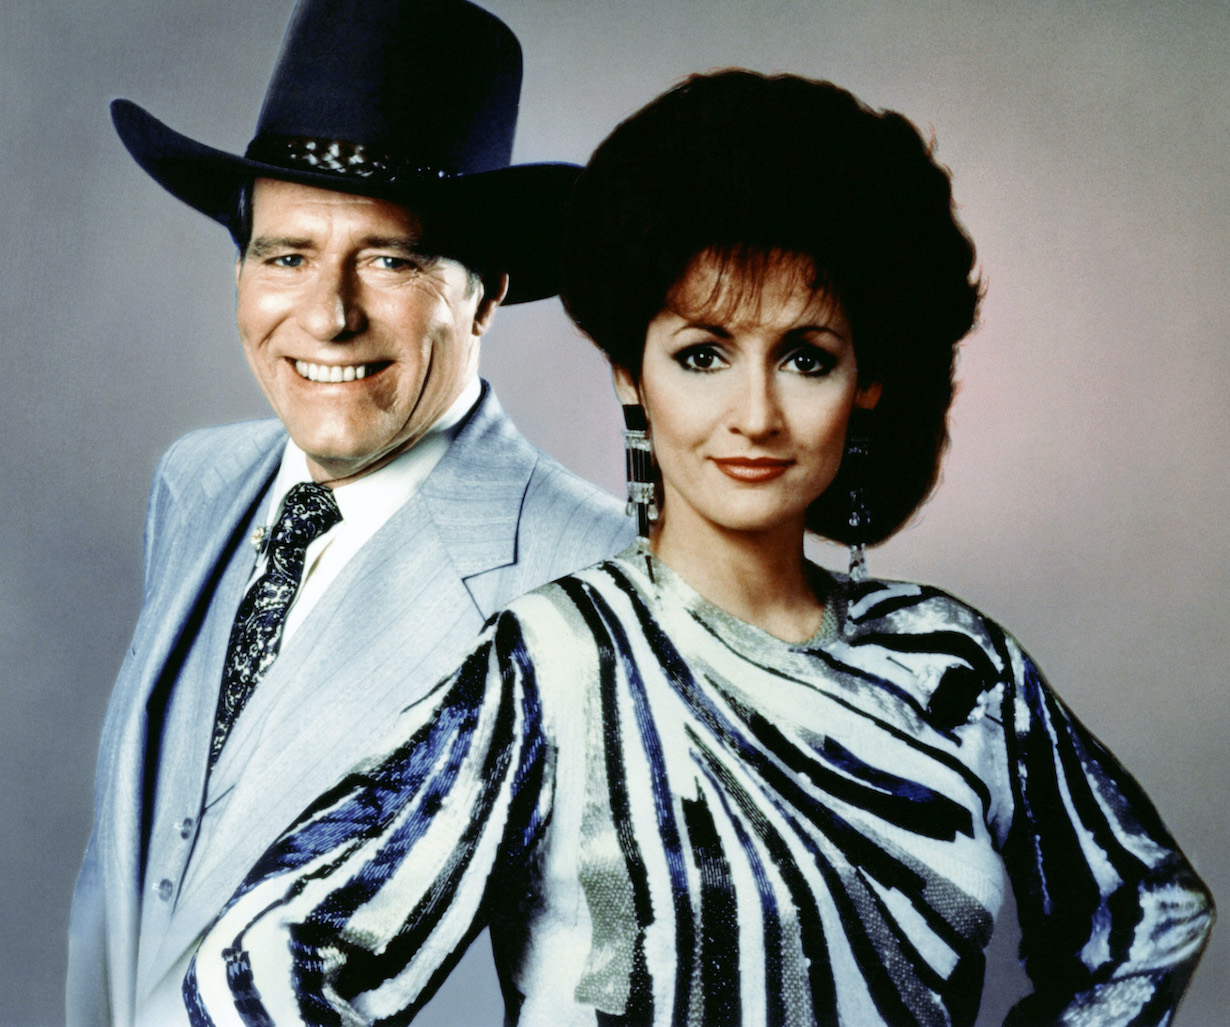 ONE LIFE TO LIVE, (from left): Phil Carey, Robin Strasser, (ca. early 1980s), 1968-. © ABC / Courtesy: Everett Collection